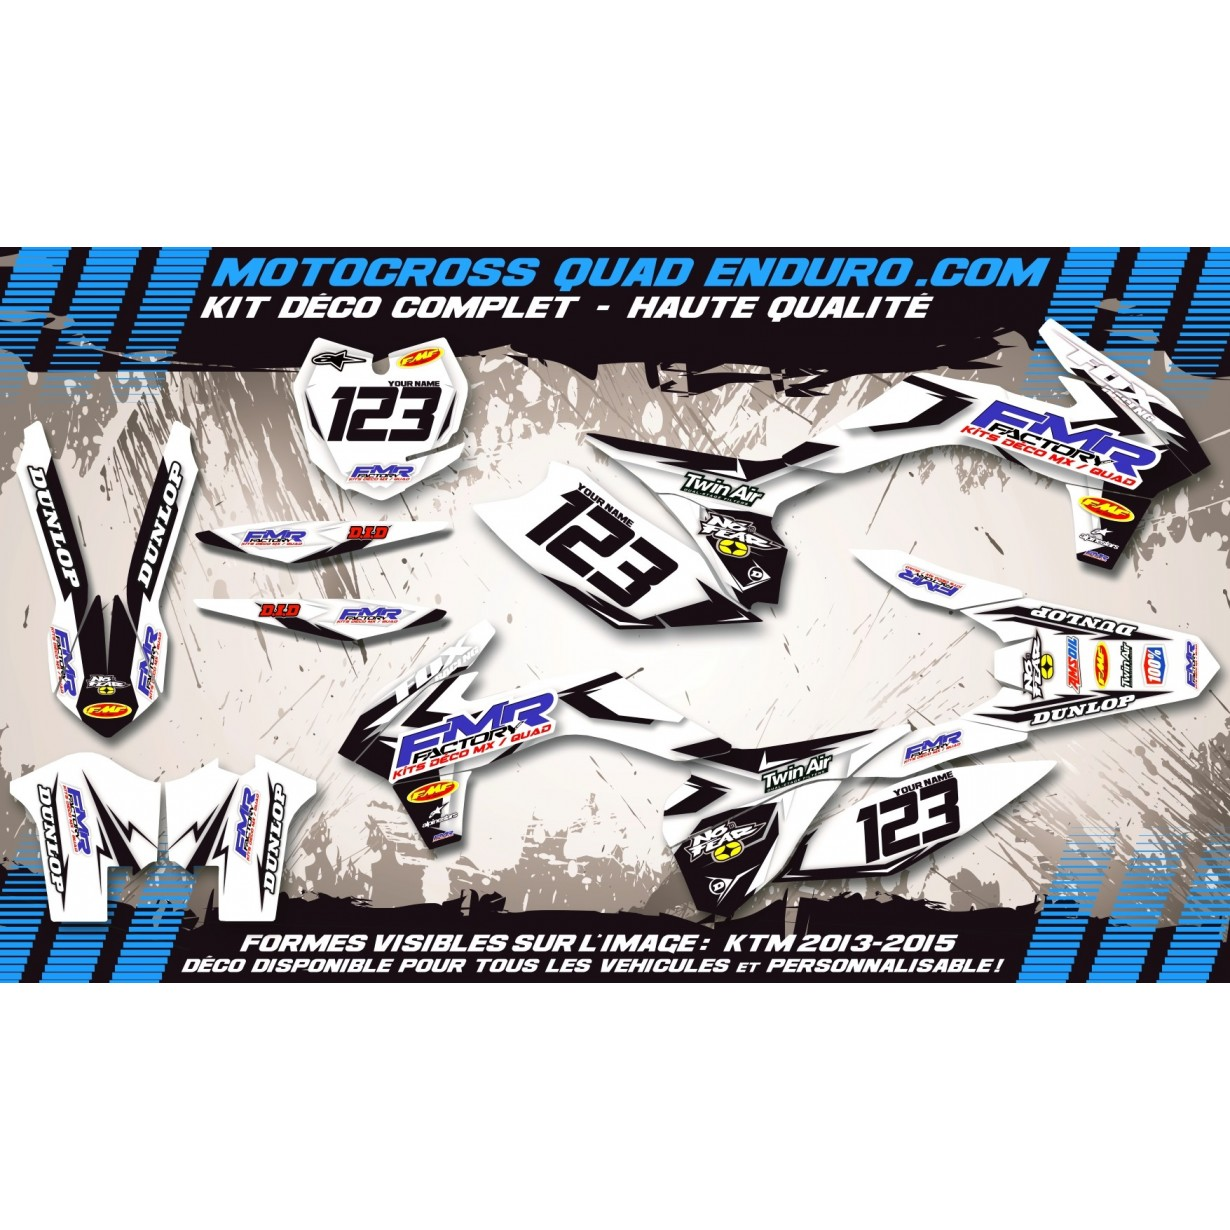 KIT DÉCO Perso MX 00-03 Fmr factory WT Edition MA13WT